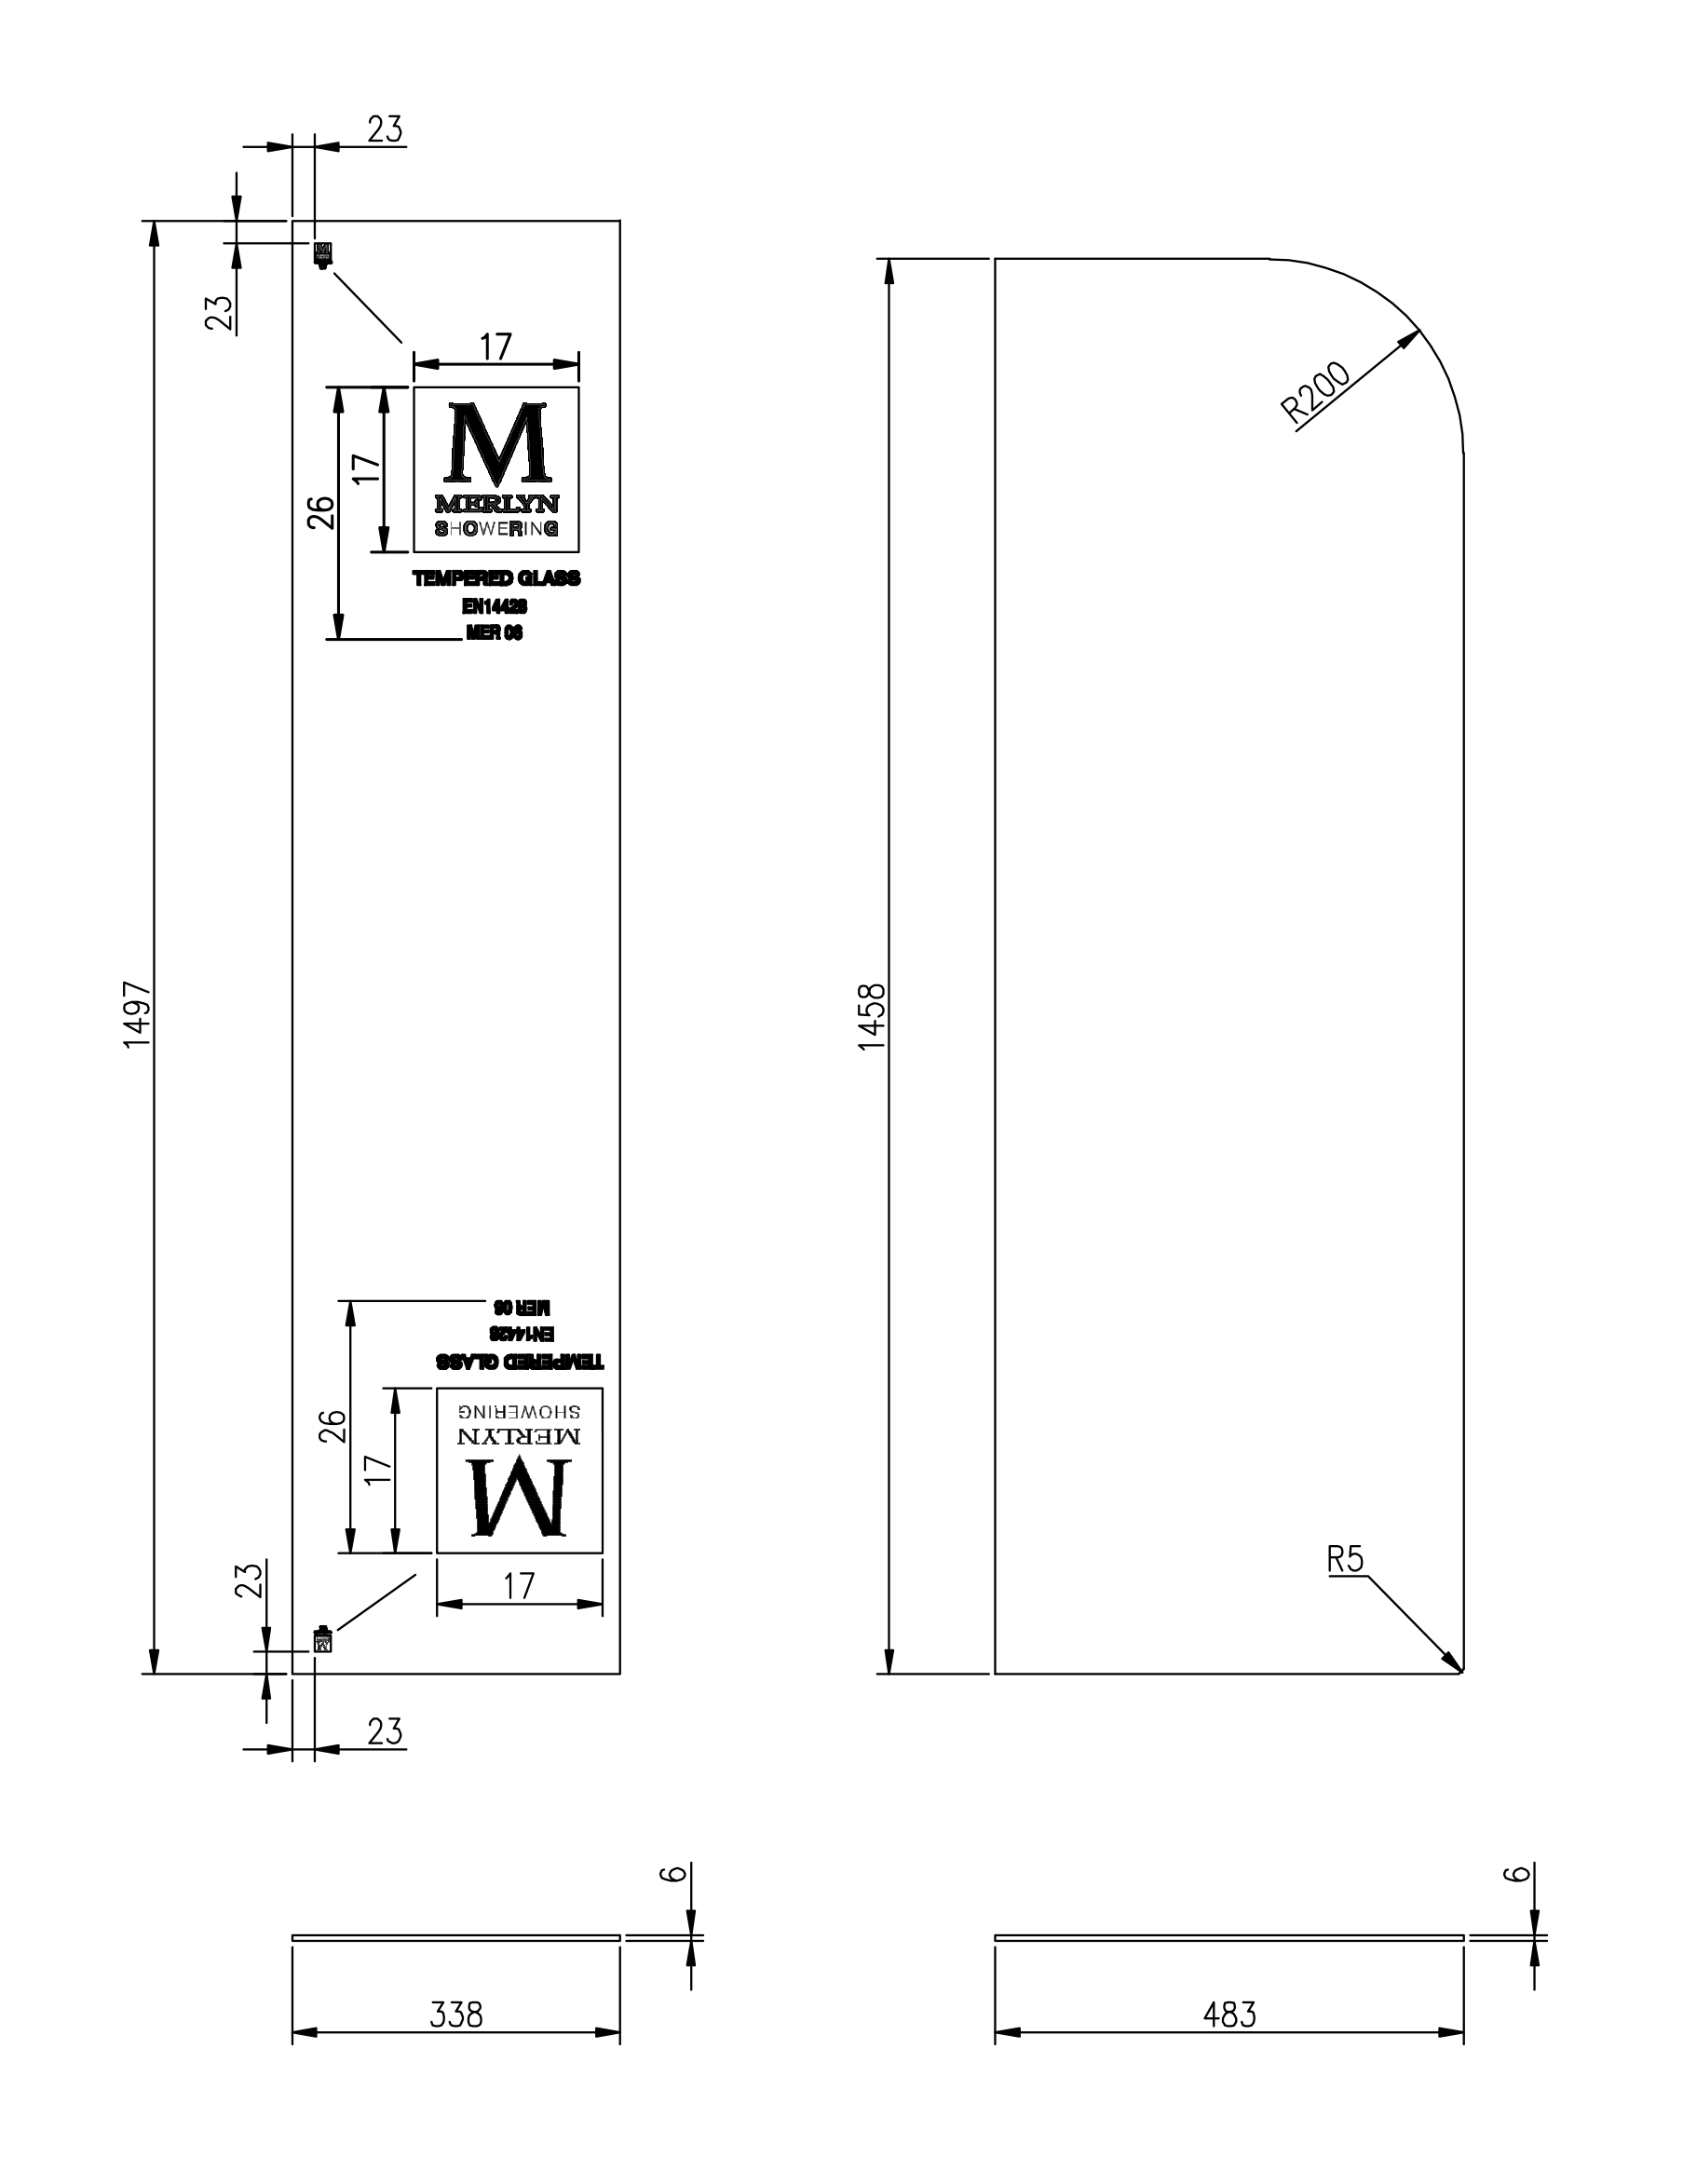 TECHNICAL DRAWING Image-Technique-MB3A